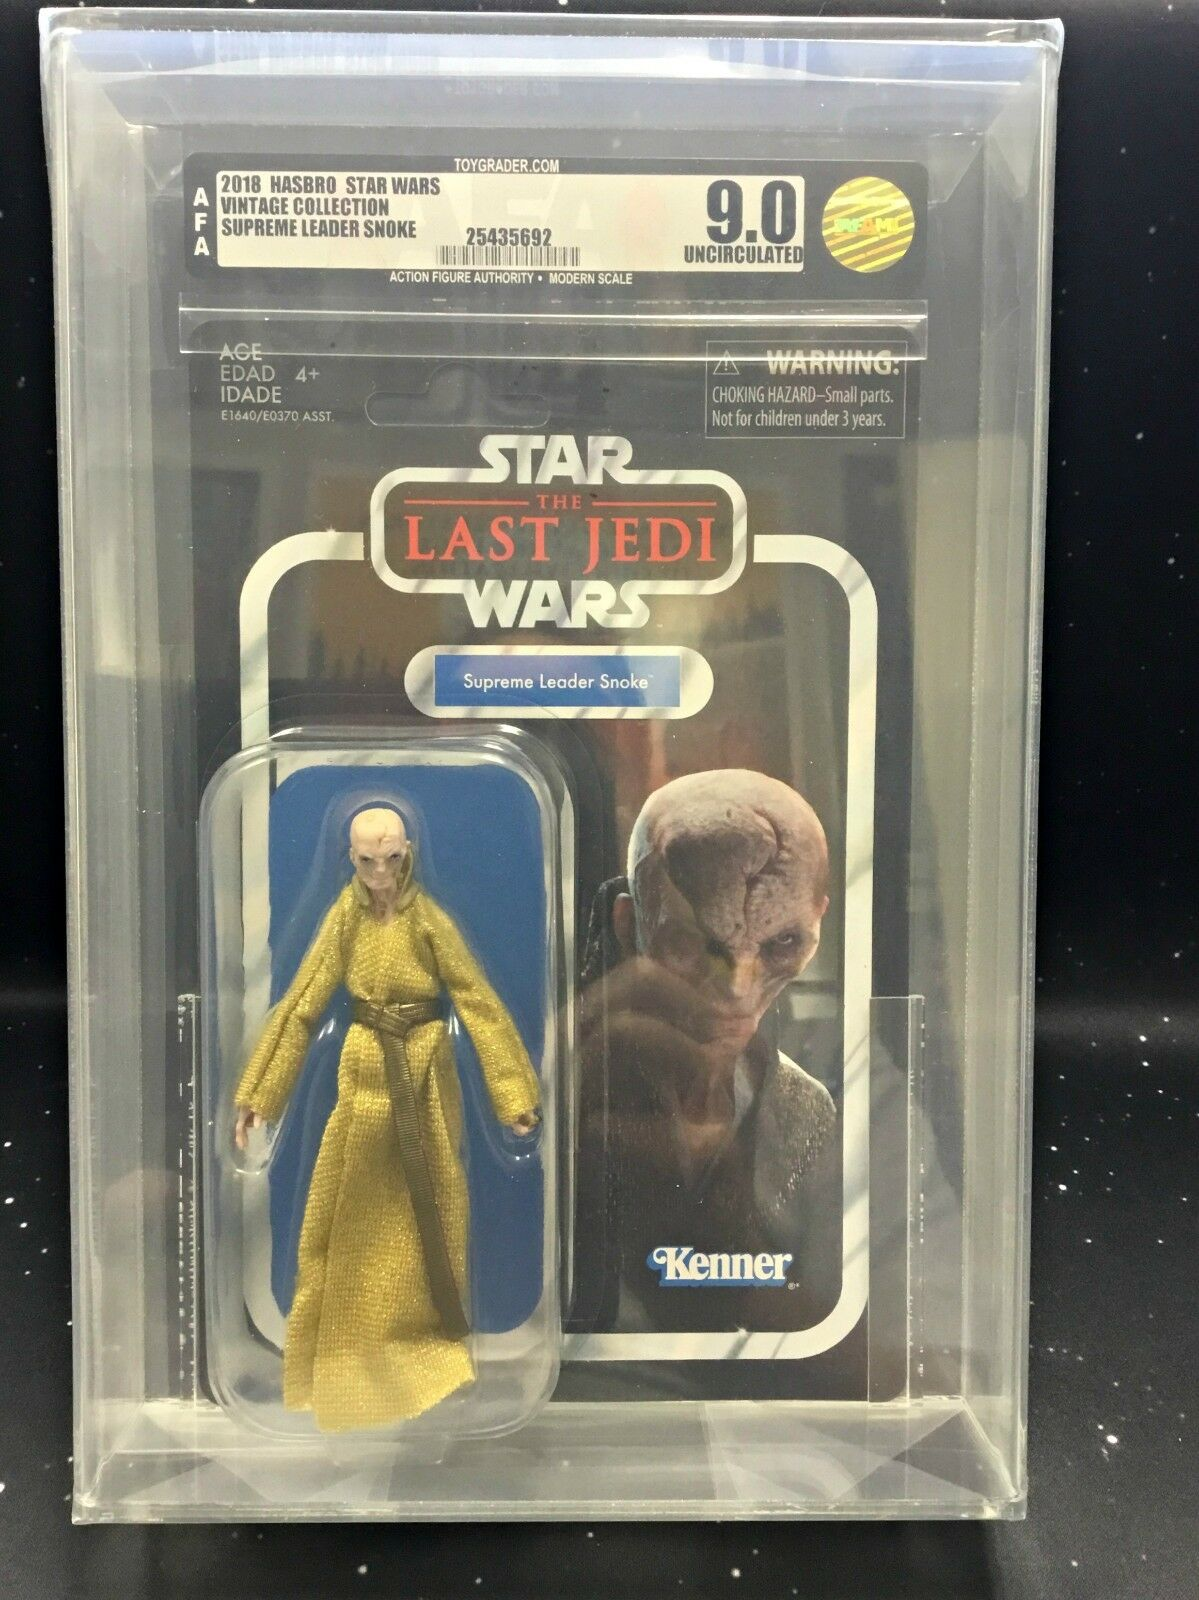 2018 Star Wars Wars Wars Vintage Collection VC121 Supreme Leader Snoke AFA U9.0 ffa793